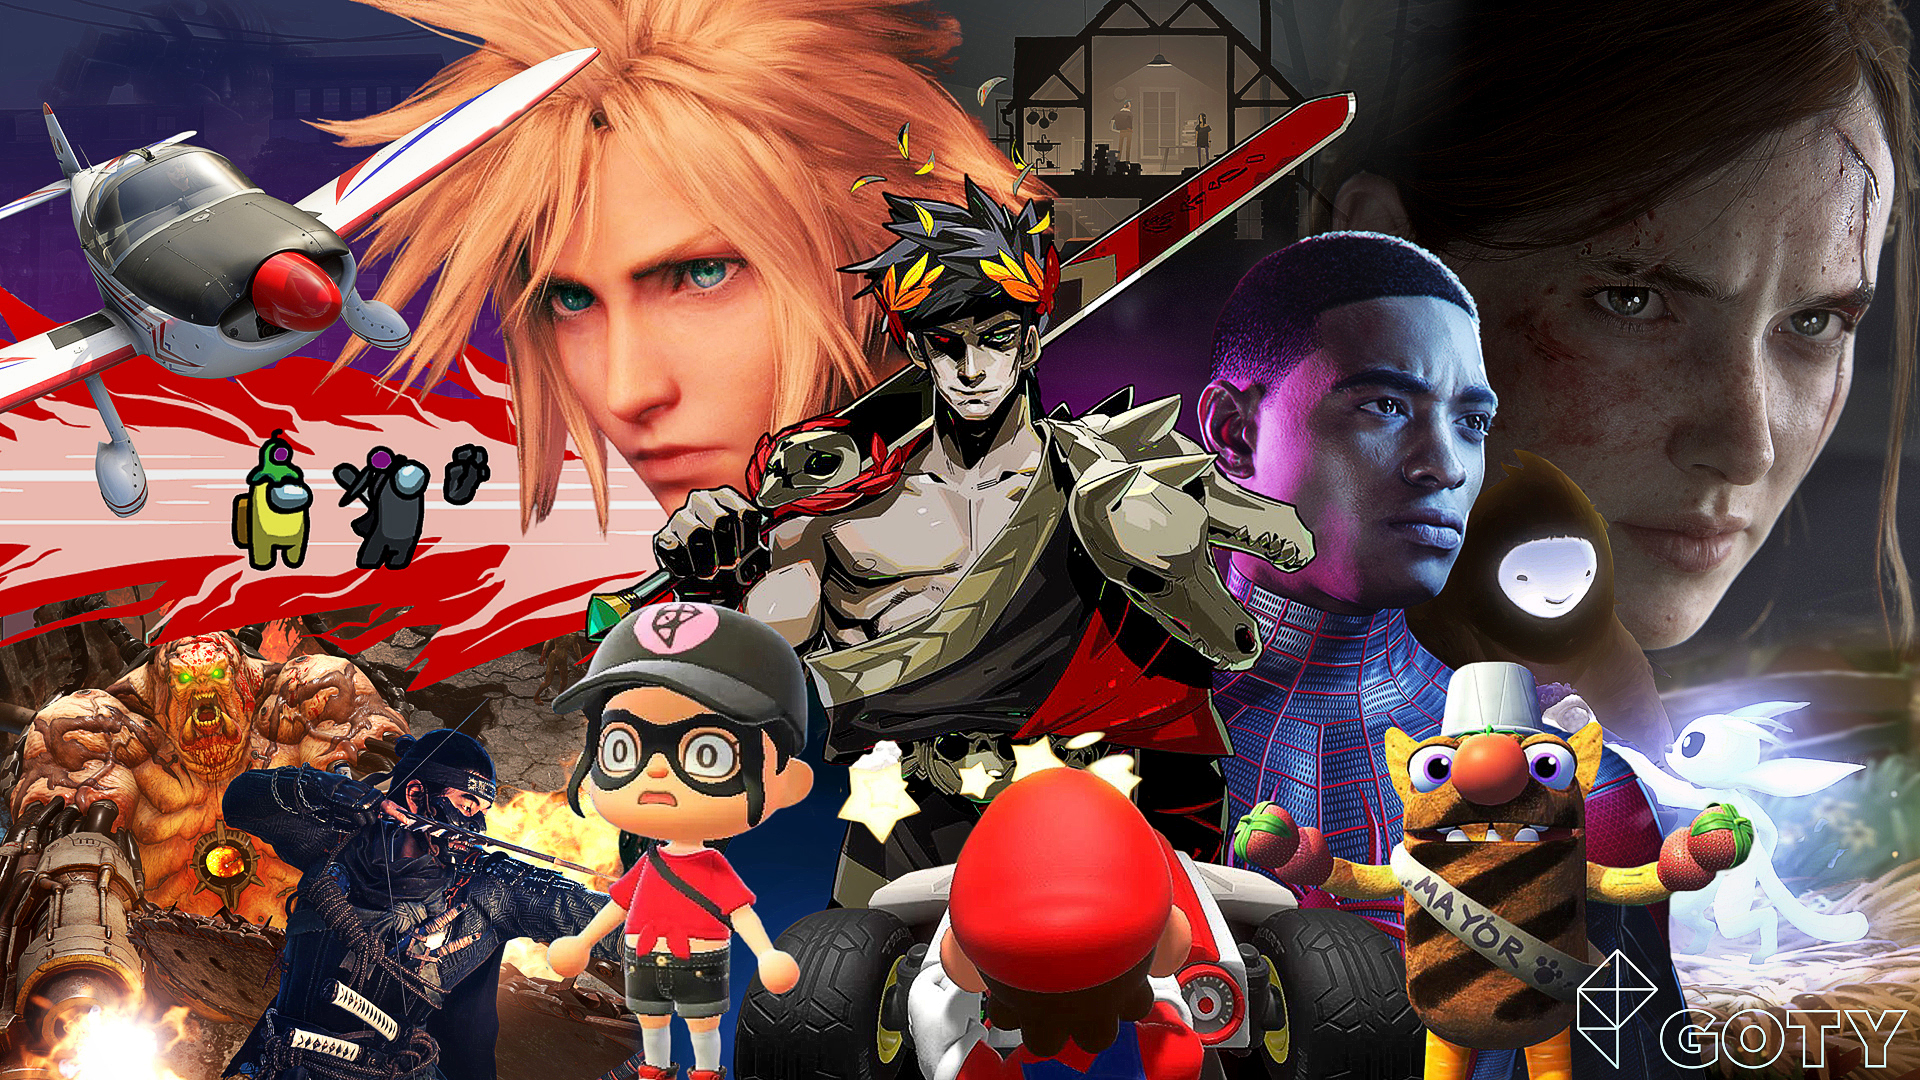 Graphic collage featuring images and characters from Polygon's Game of the Year selects